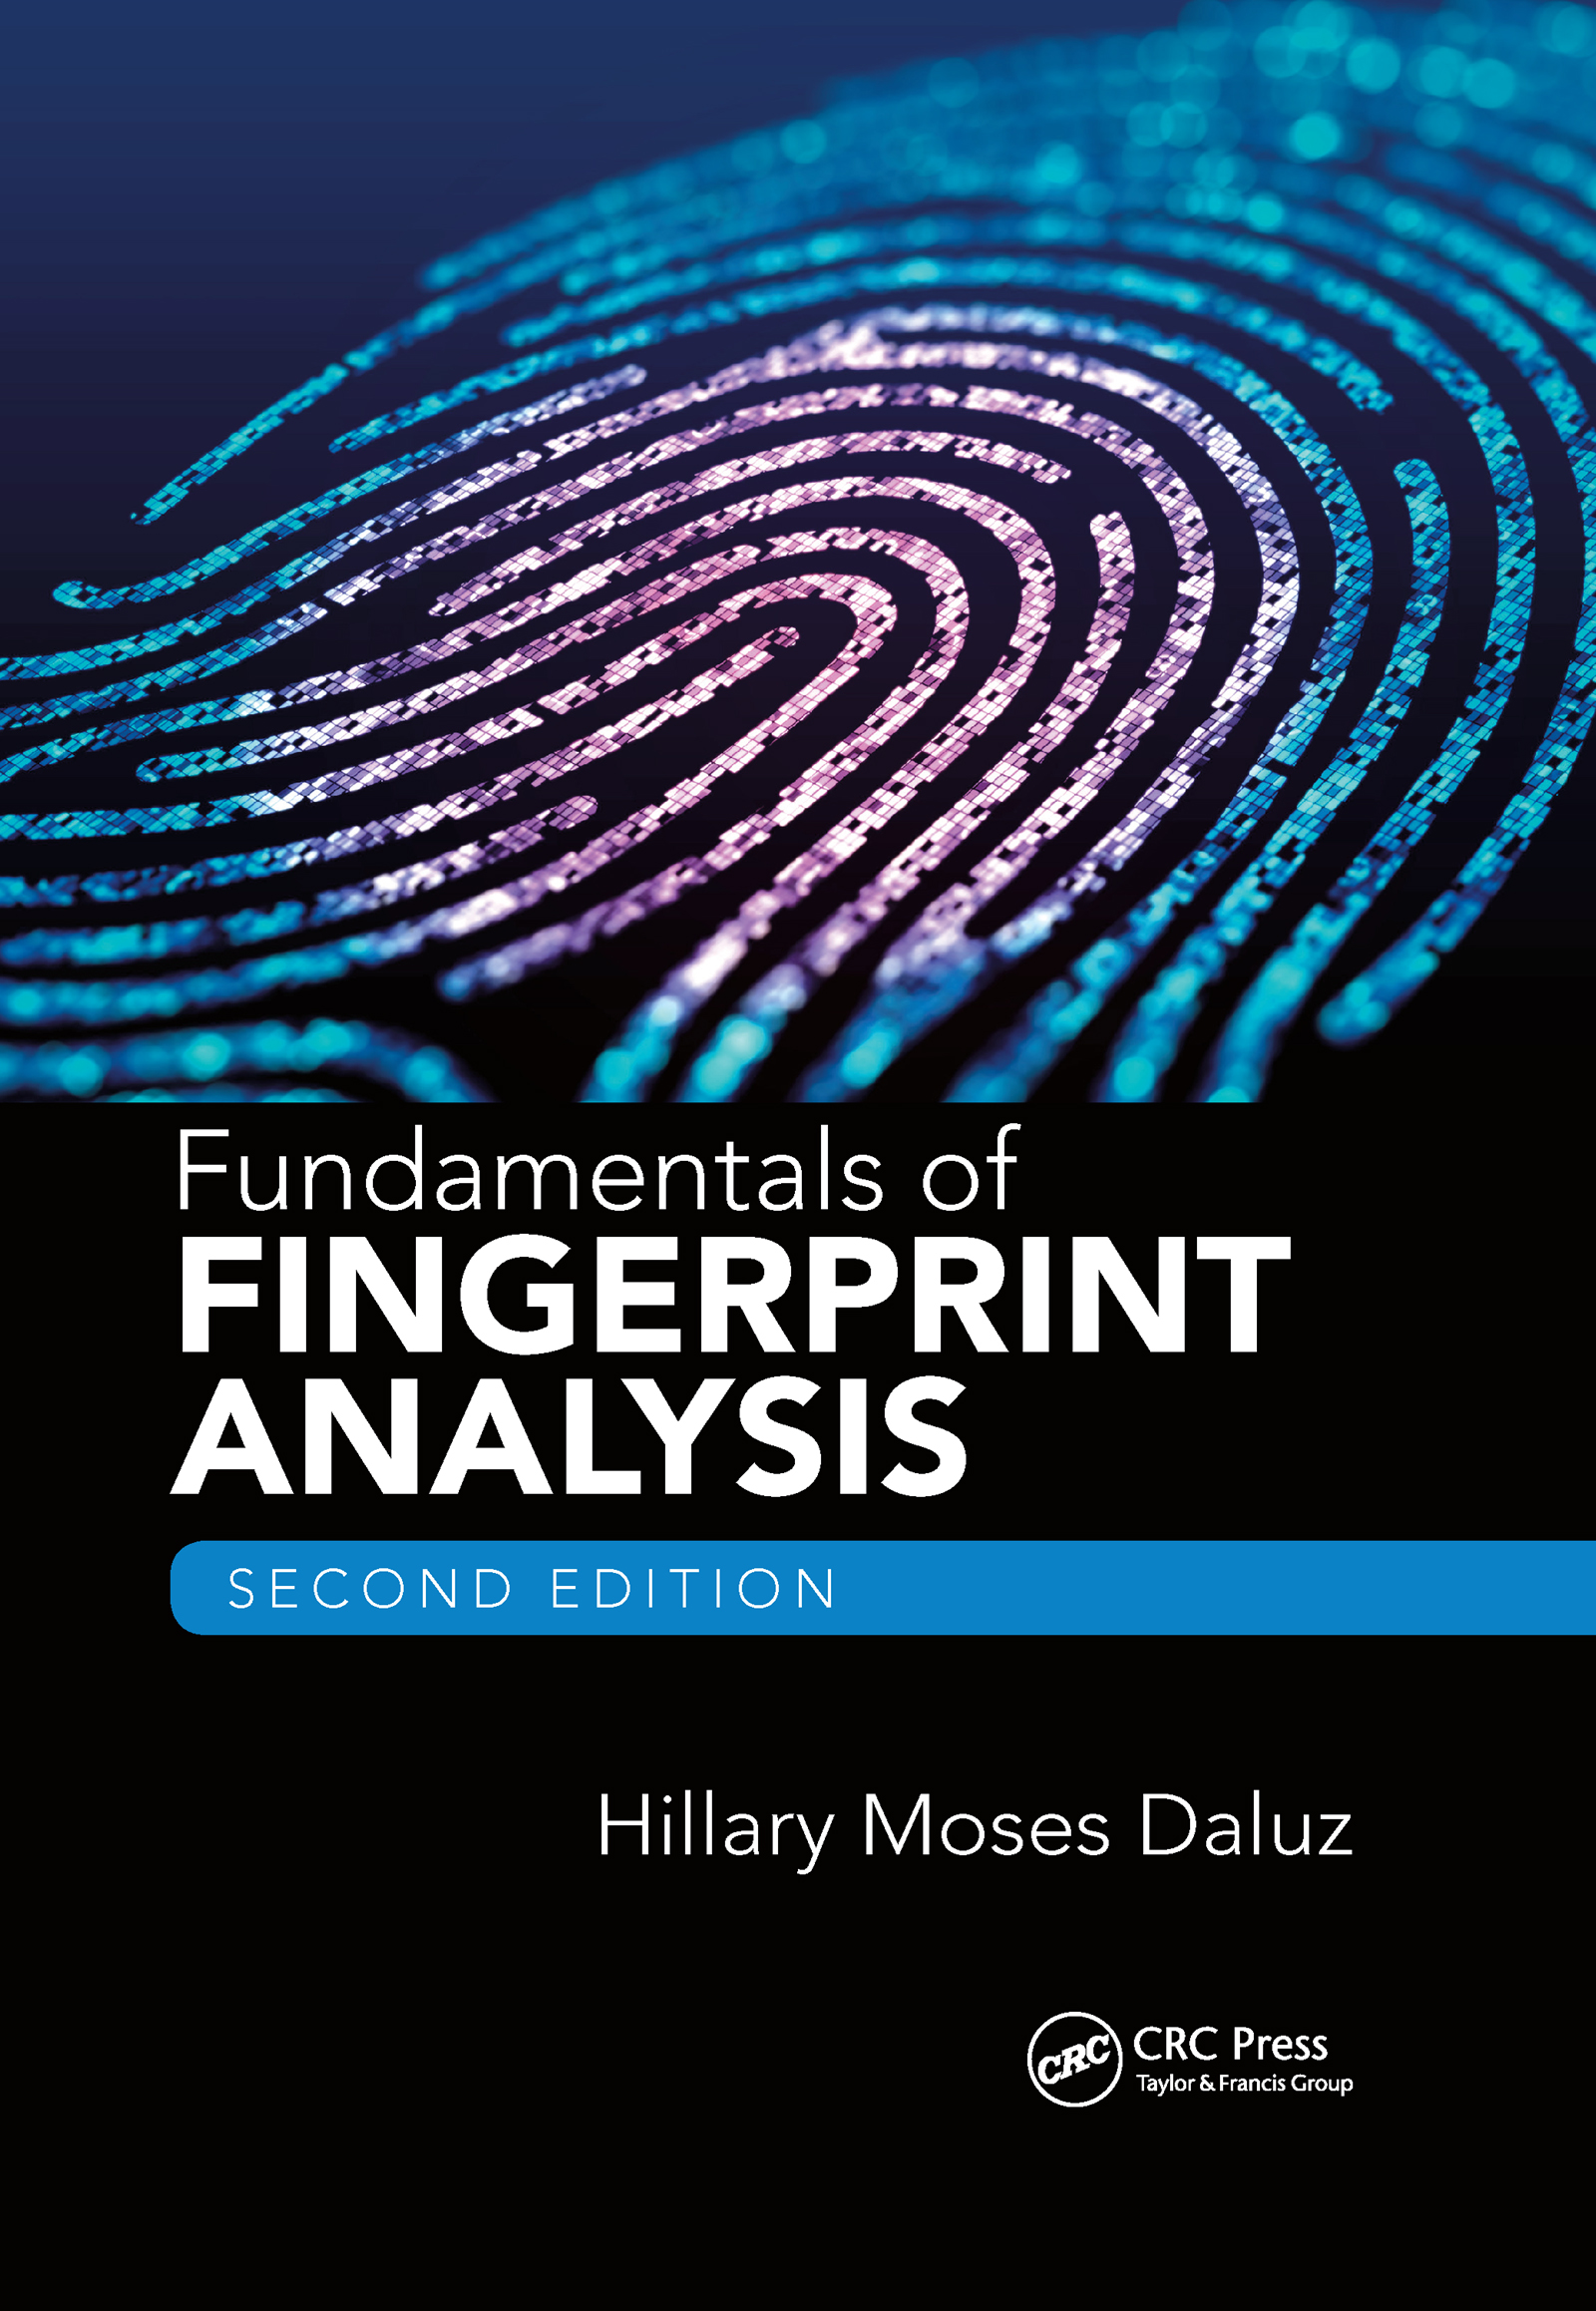 Fundamentals of Fingerprint Analysis, Second Edition